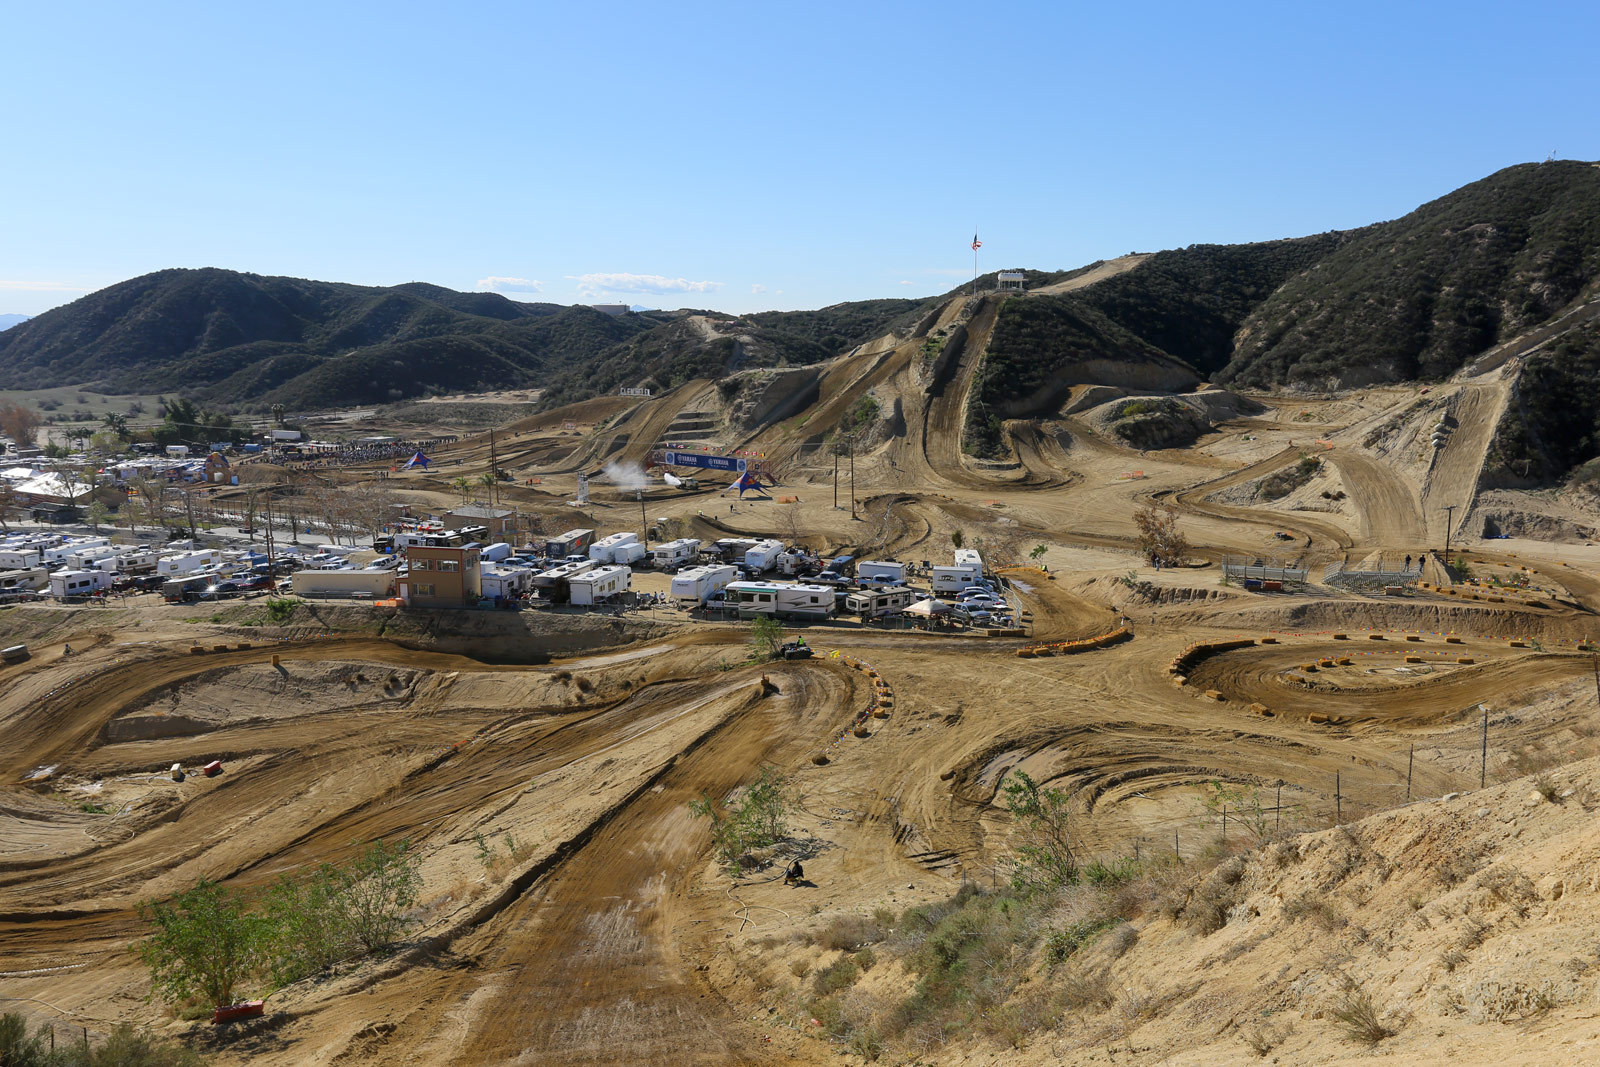 Day In The Dirt - Friday and Saturday at Red Bull Day In The Dirt 18 - Motocross Pictures - Vital MX